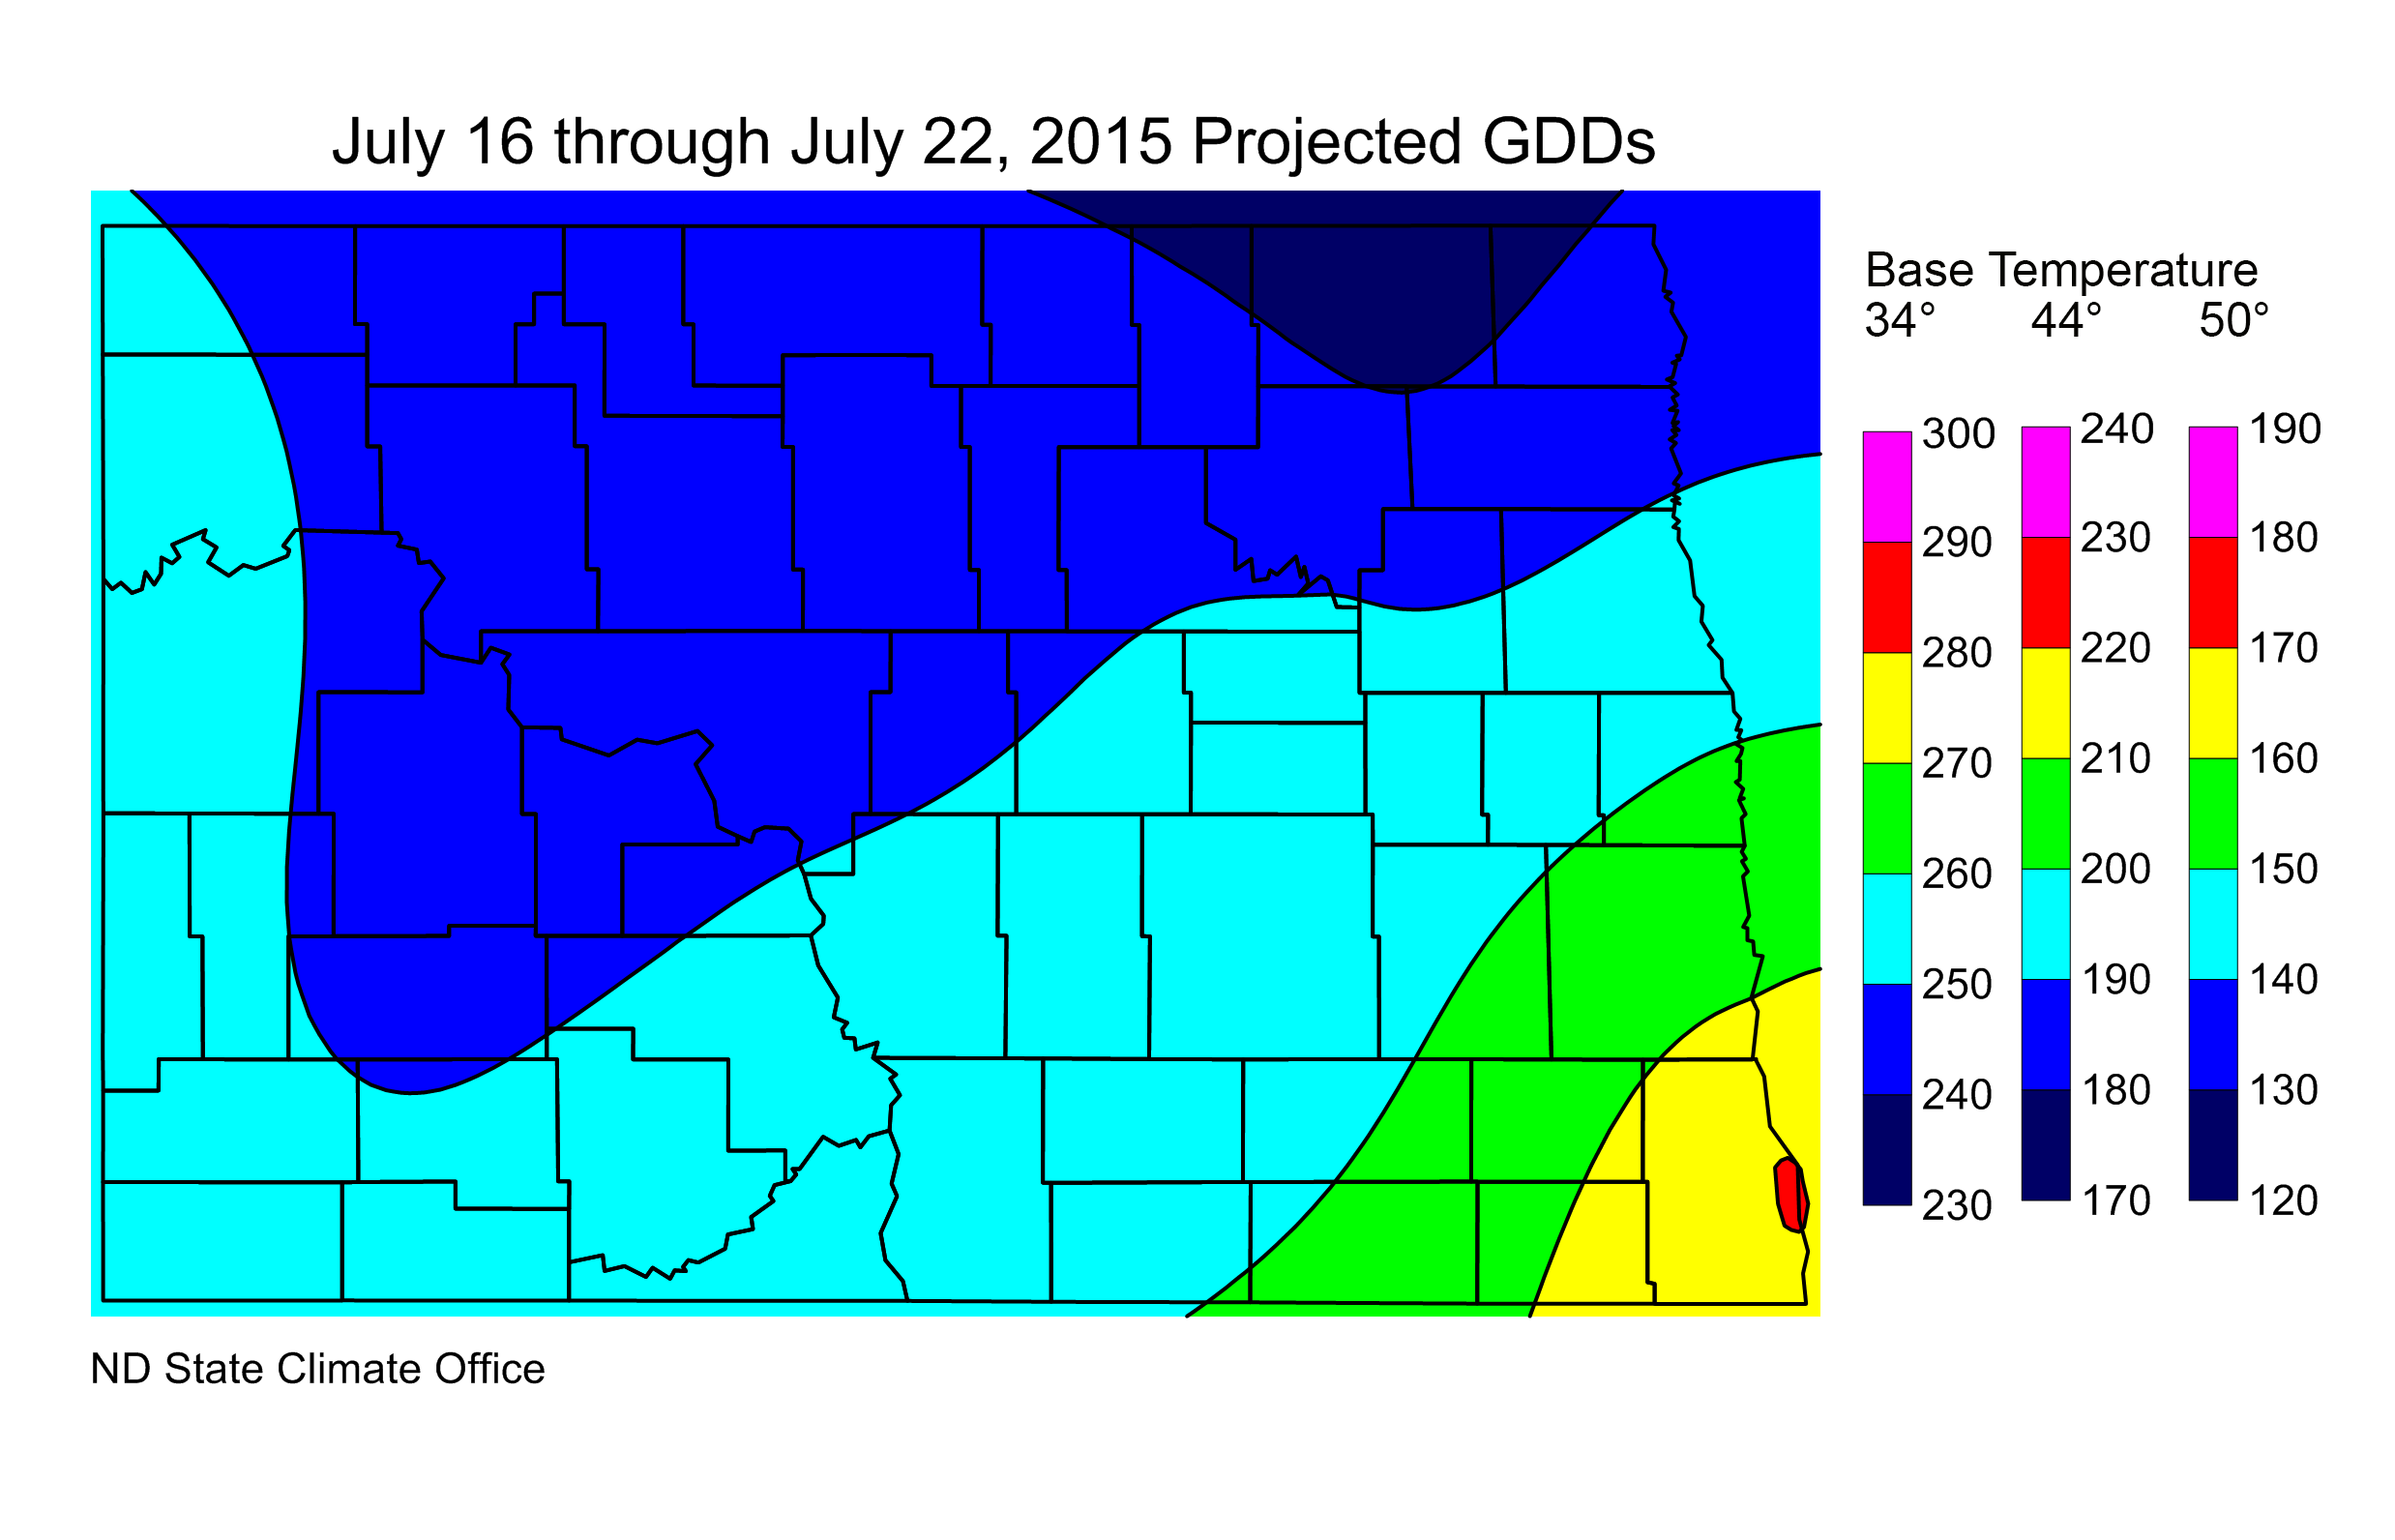 Figure 2:  Projected Growing Degree Days from July 16 through July 22, 2015